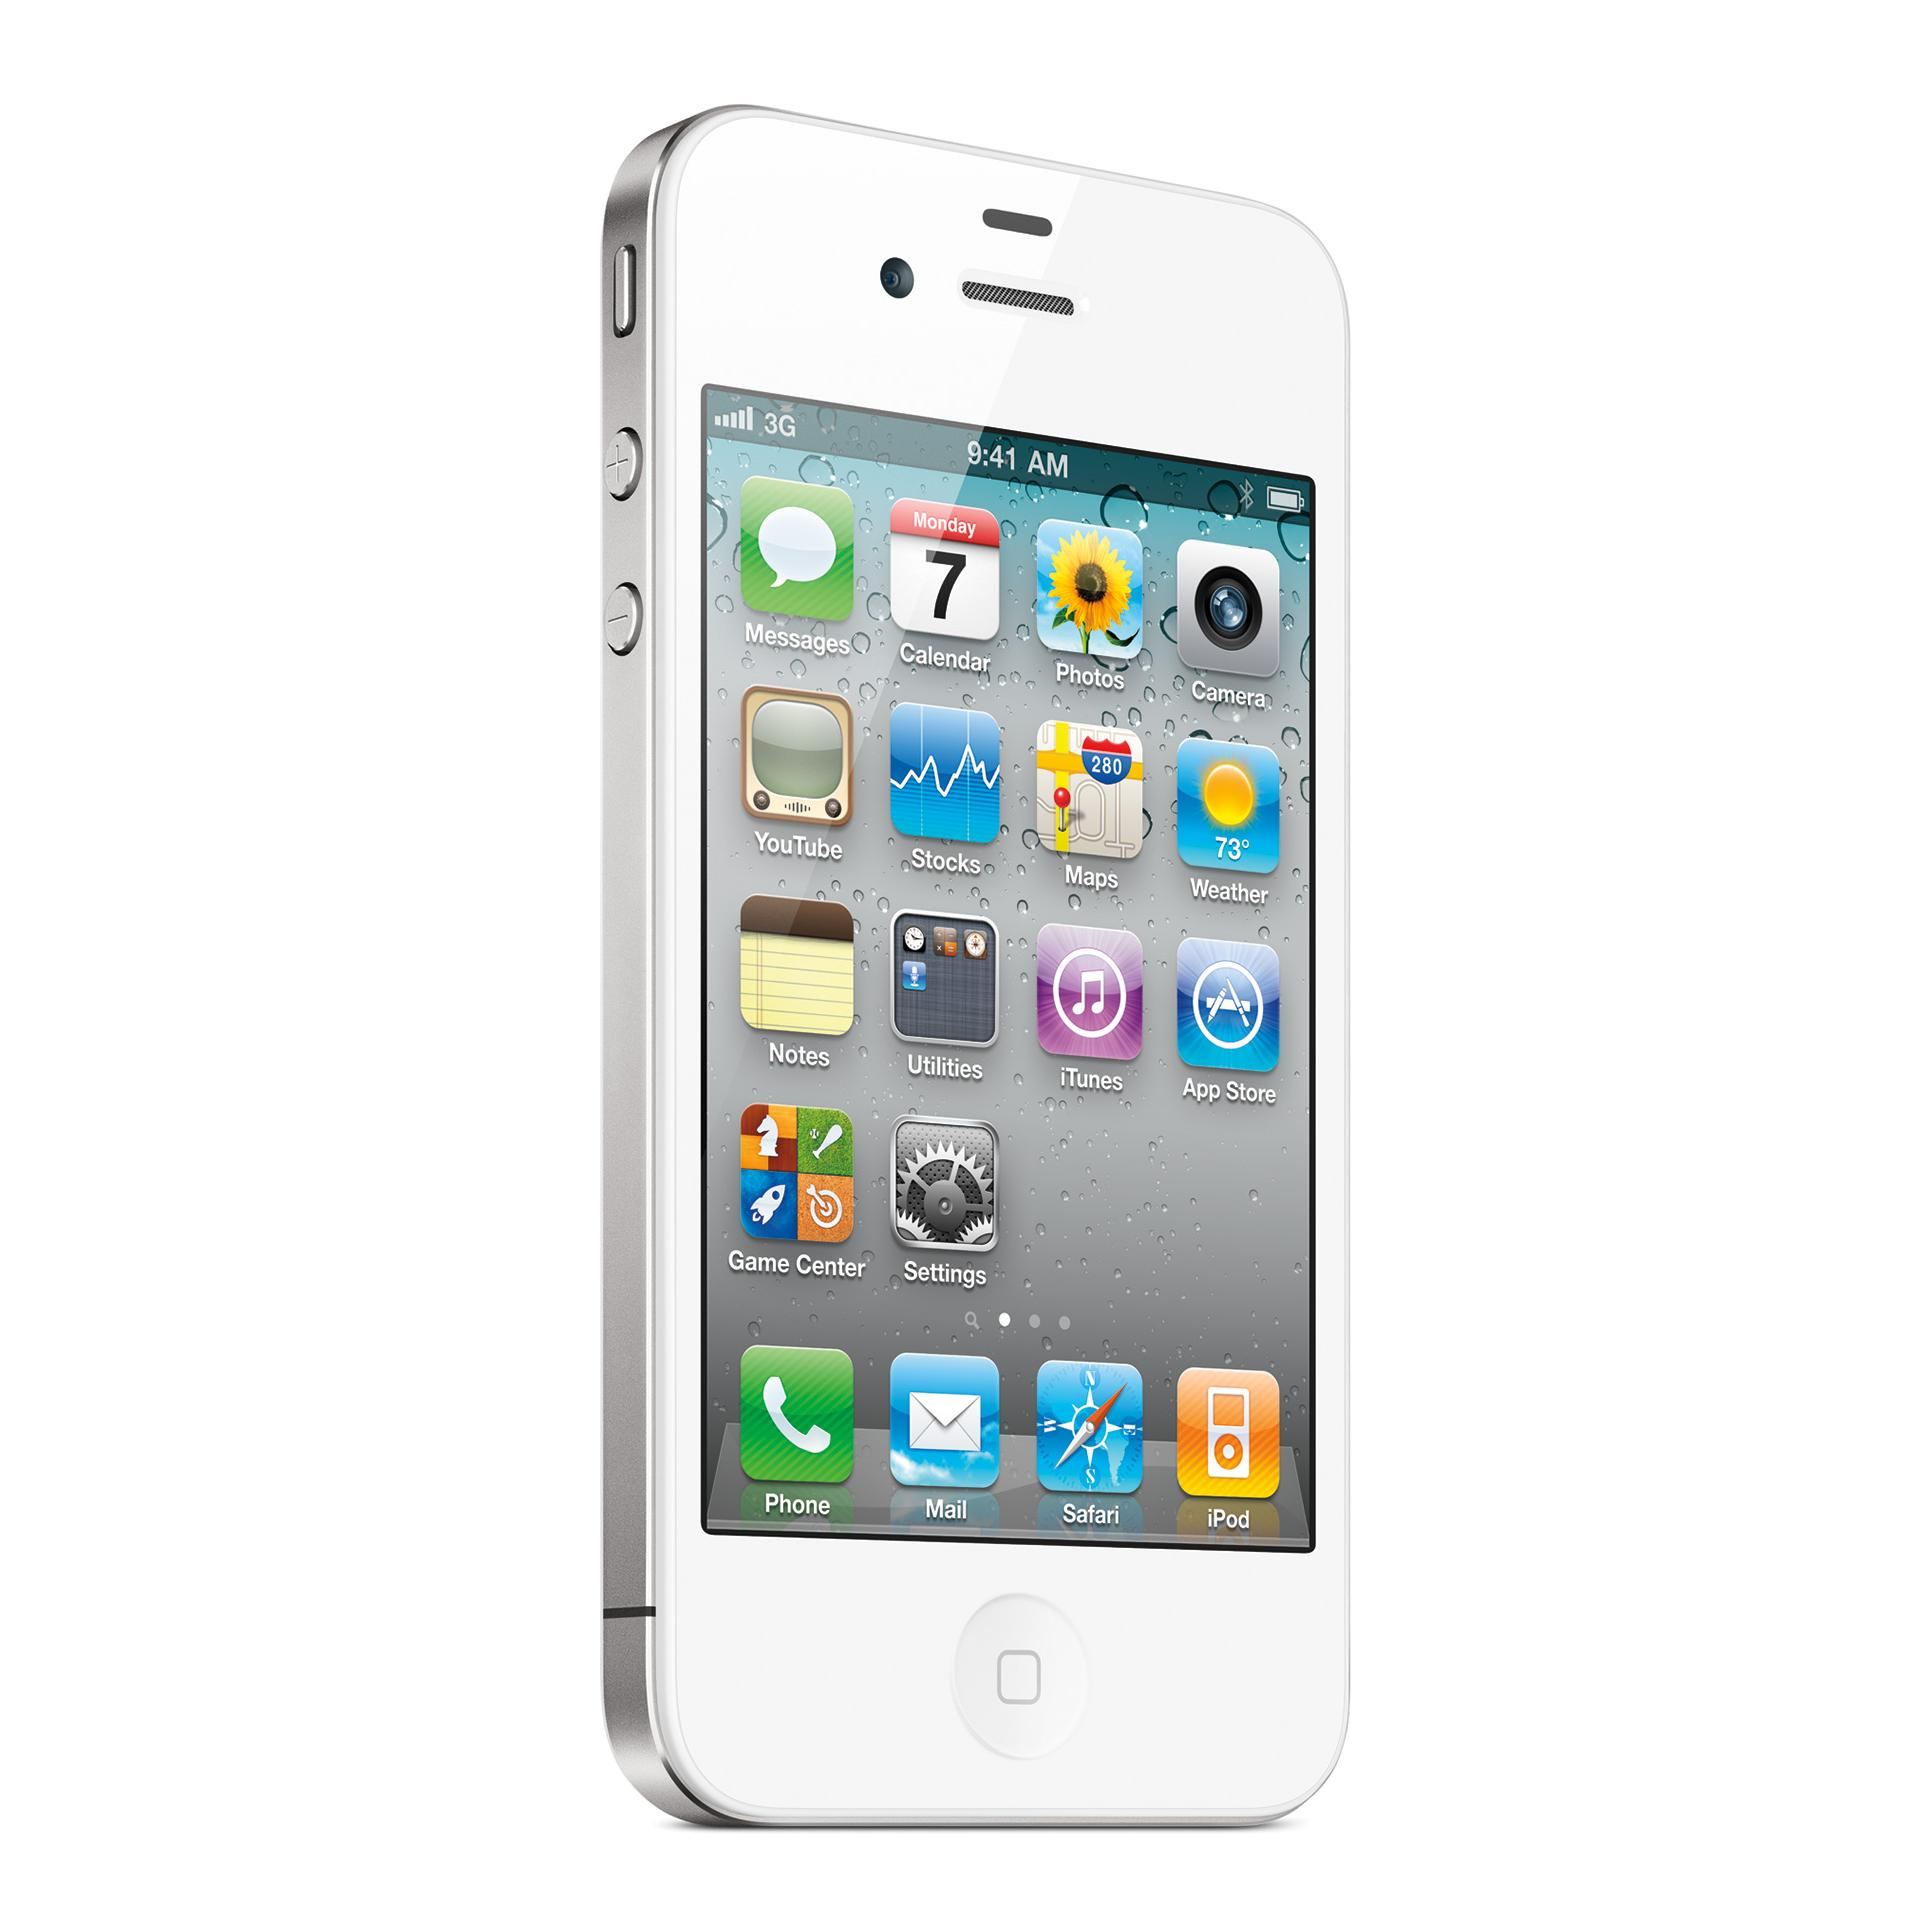 Iphone 4s 16gb Libre Iphone 4s 16 Gb Blanco Libre Reacondicionado Back Market